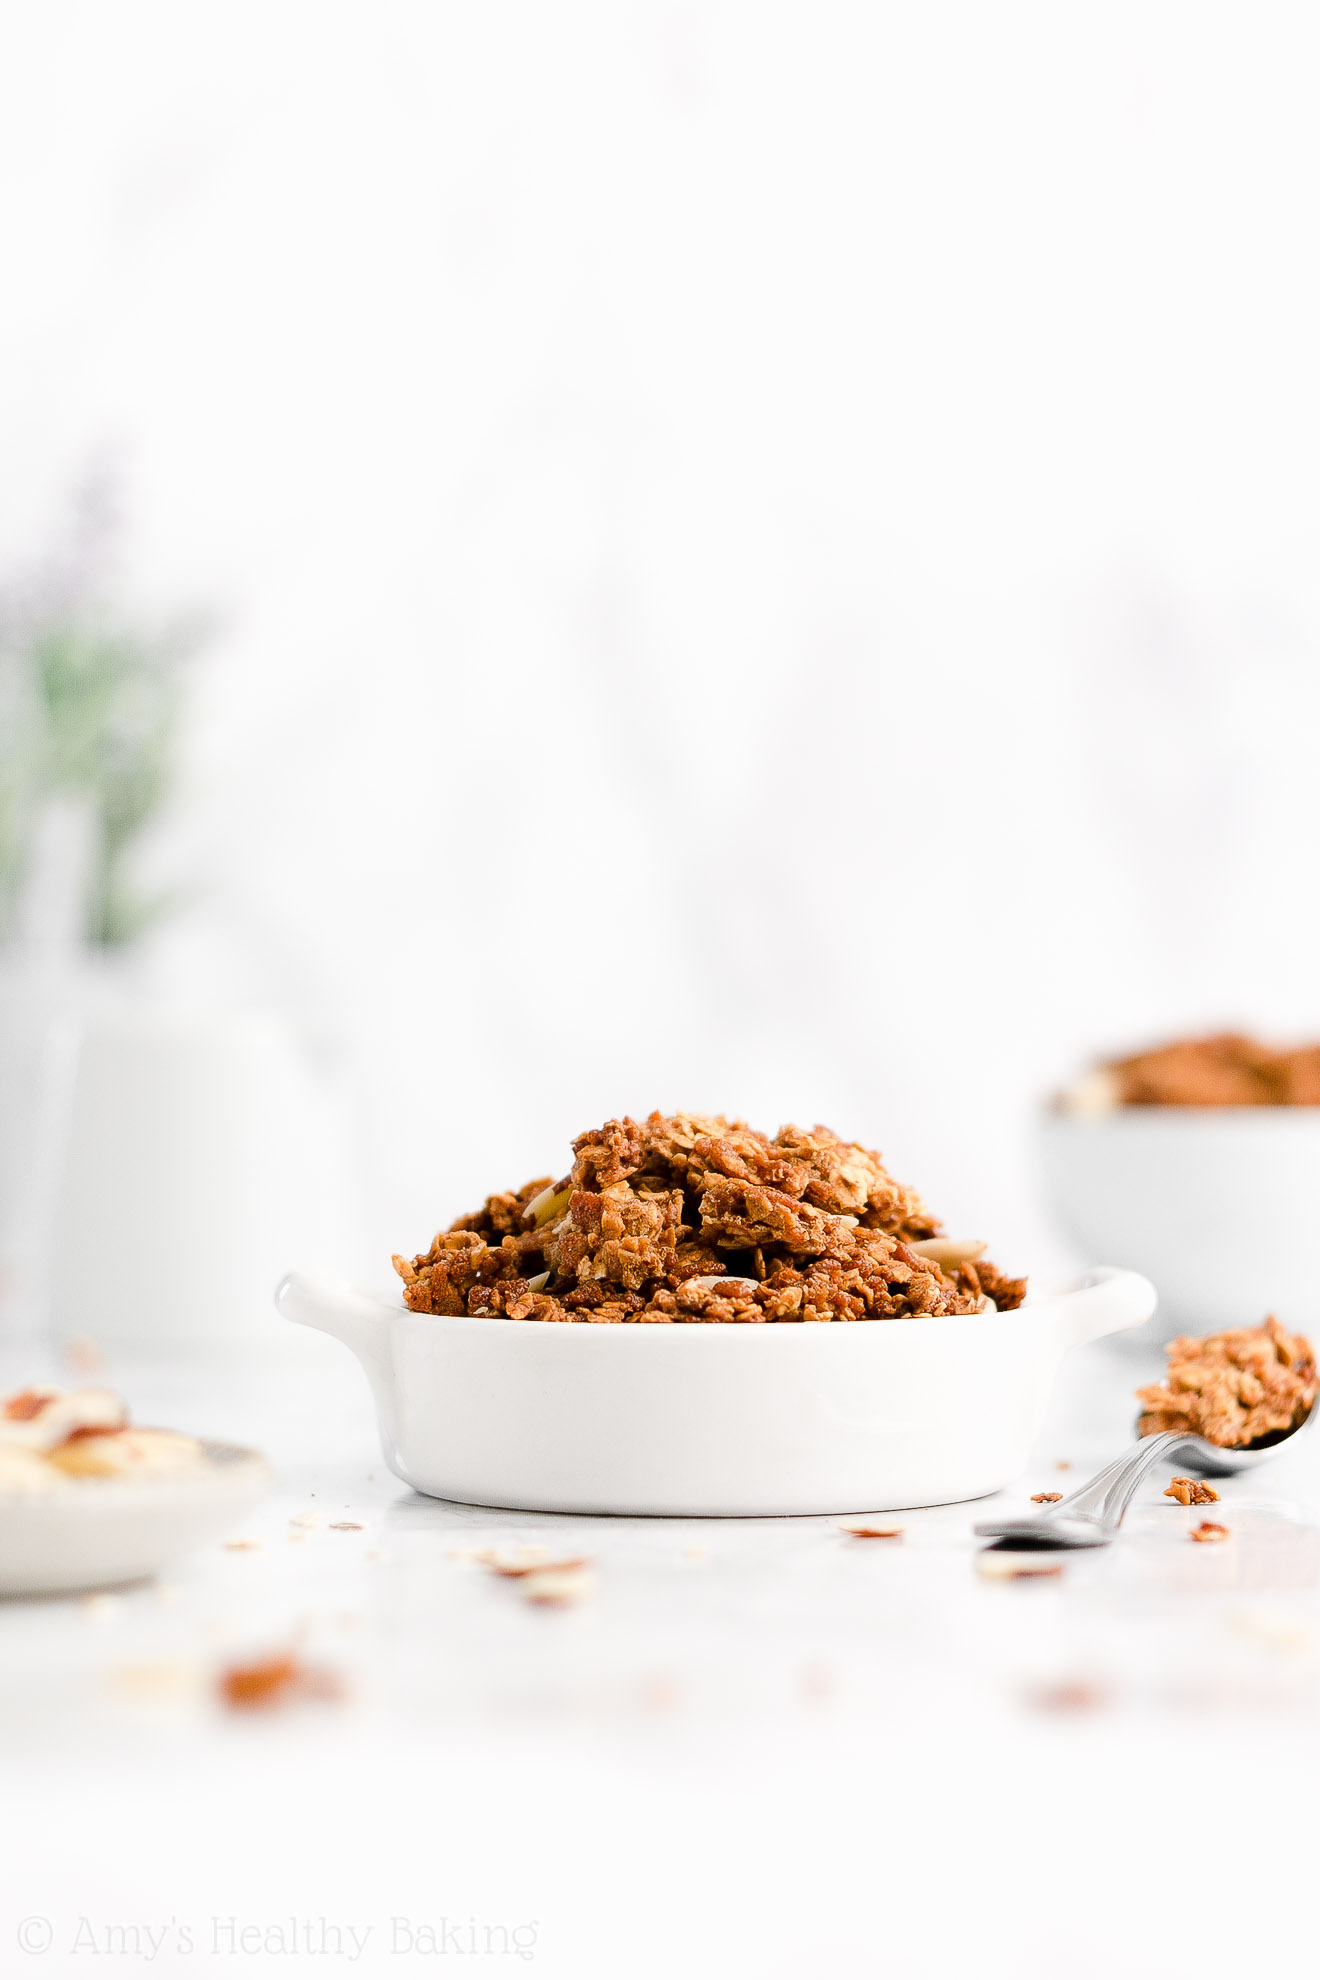 Easy Healthy Homemade Almond Butter Granola with Crunchy Clusters